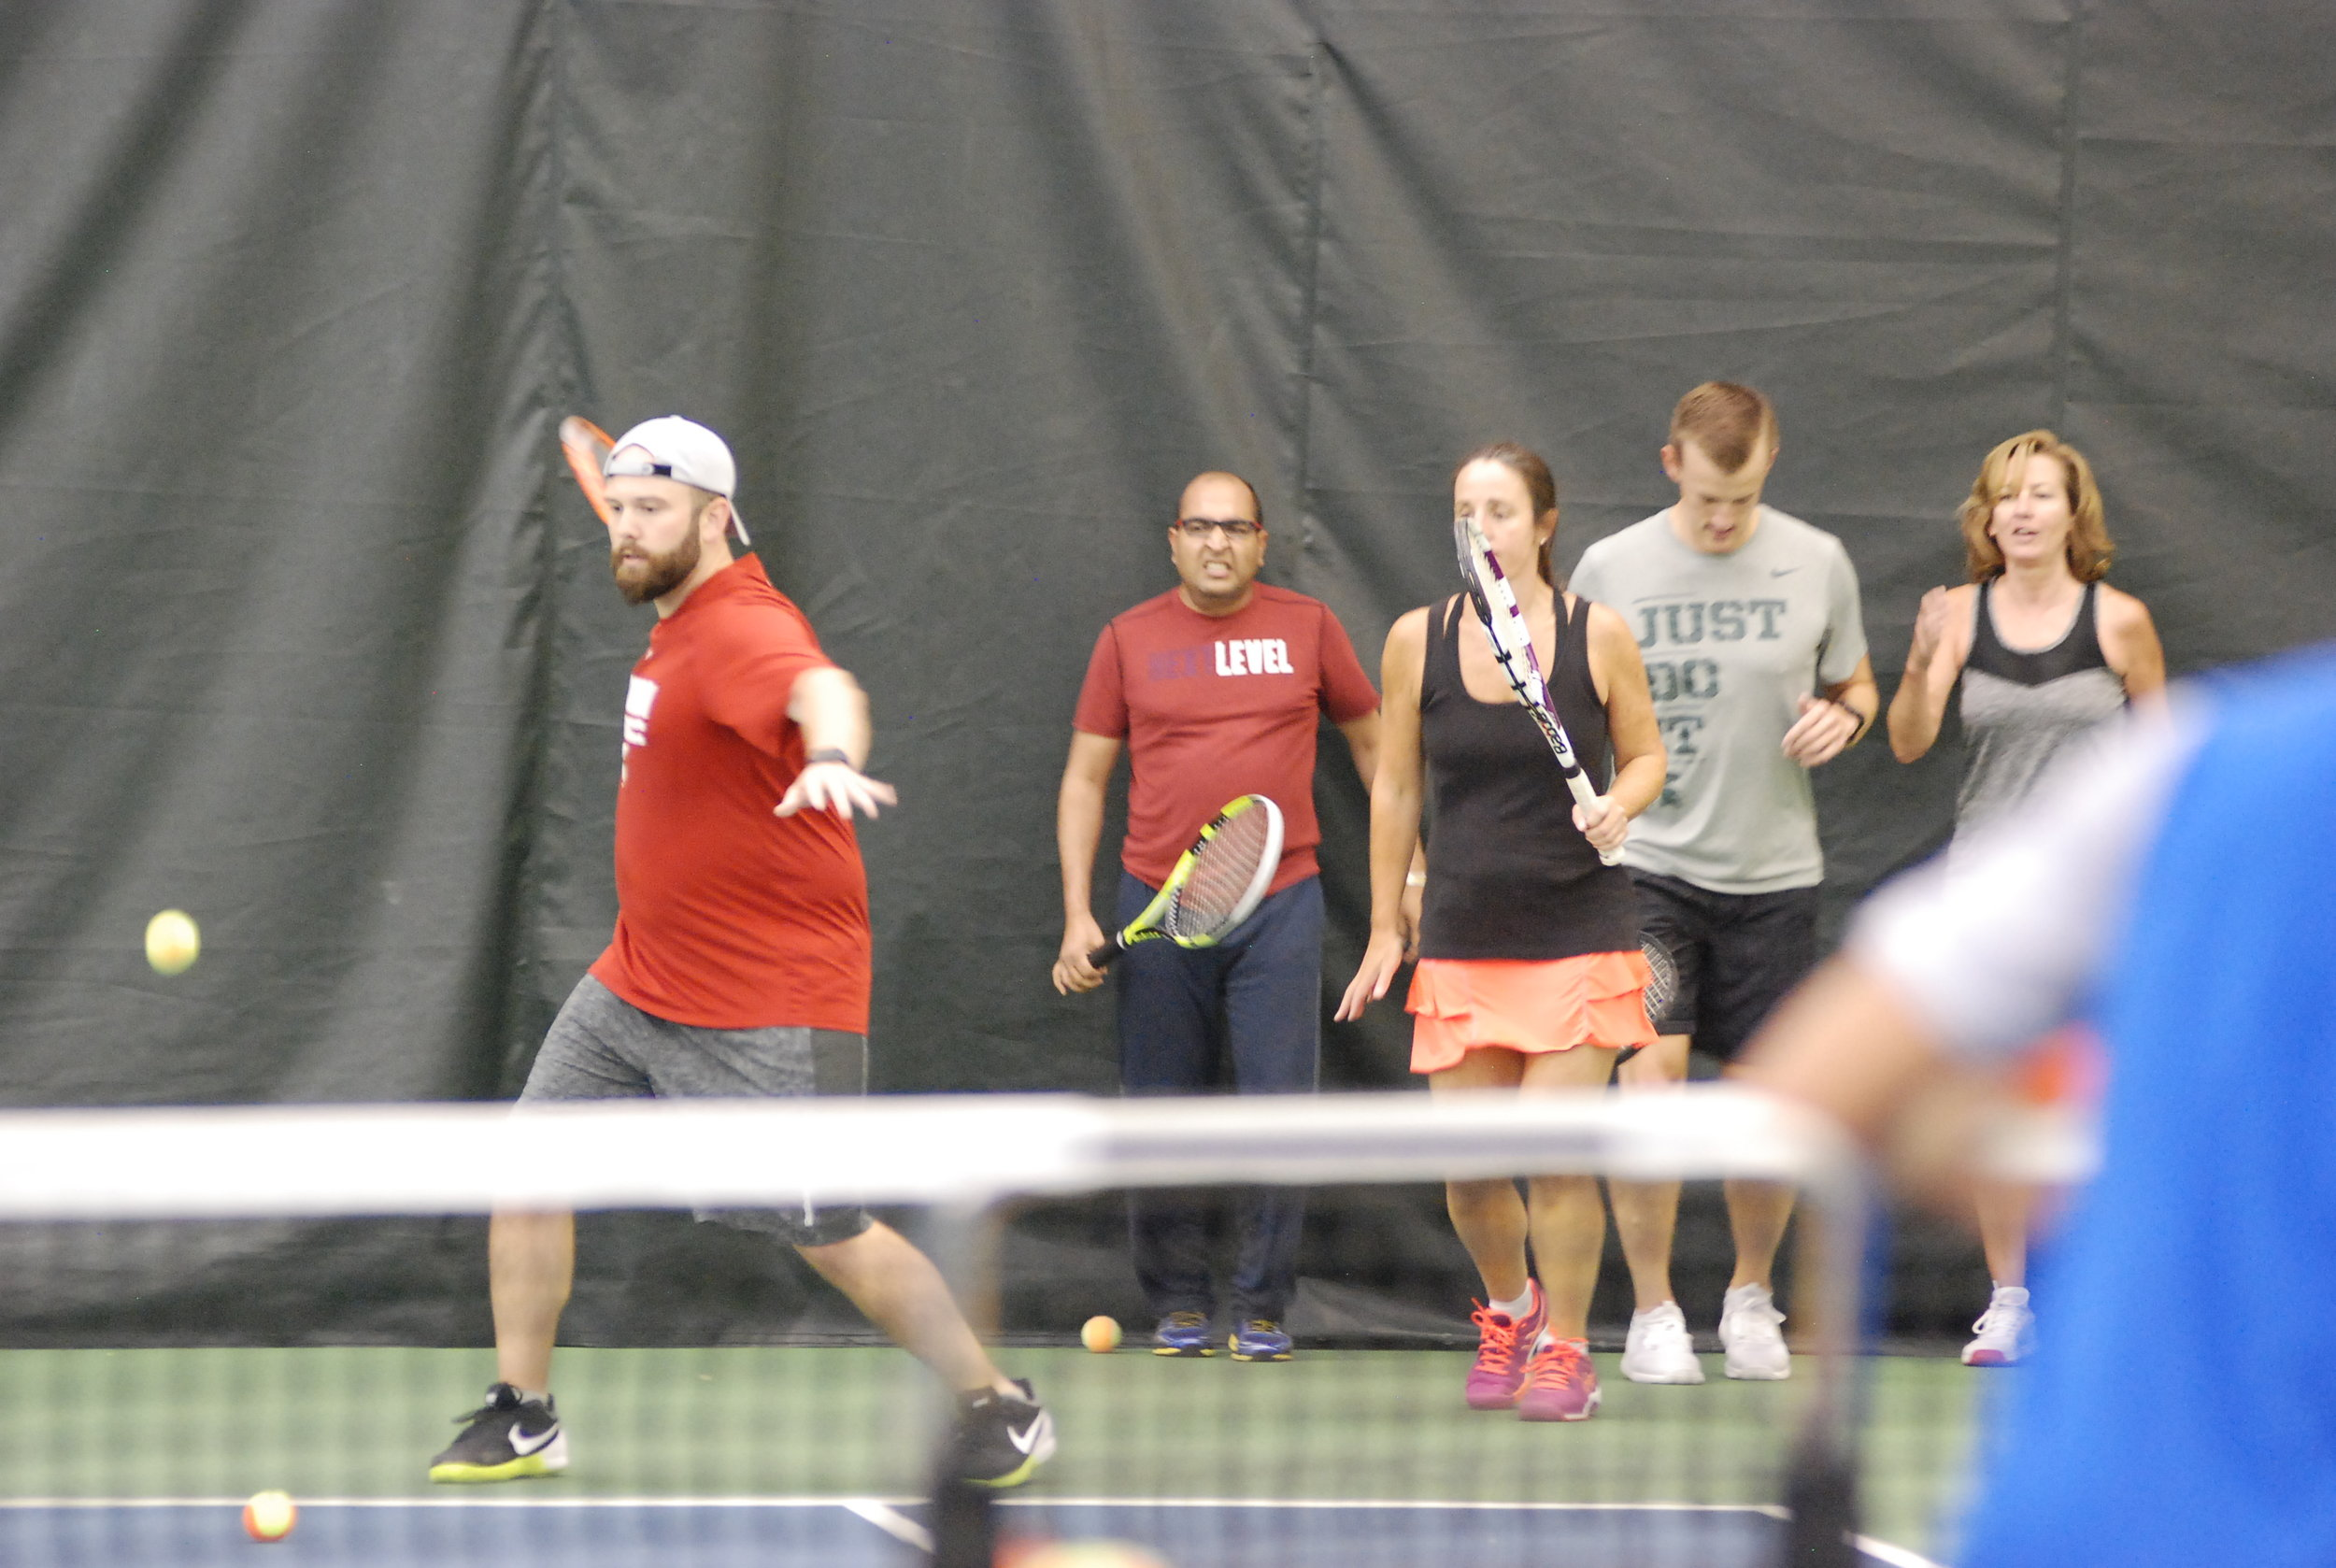 ADULT TENNIS   Make tennis a lifelong sport! No matter if you are a novice or advanced player, we have programs for you.   CLASS SESSIONS    DROP-IN CLASSES BY DAY